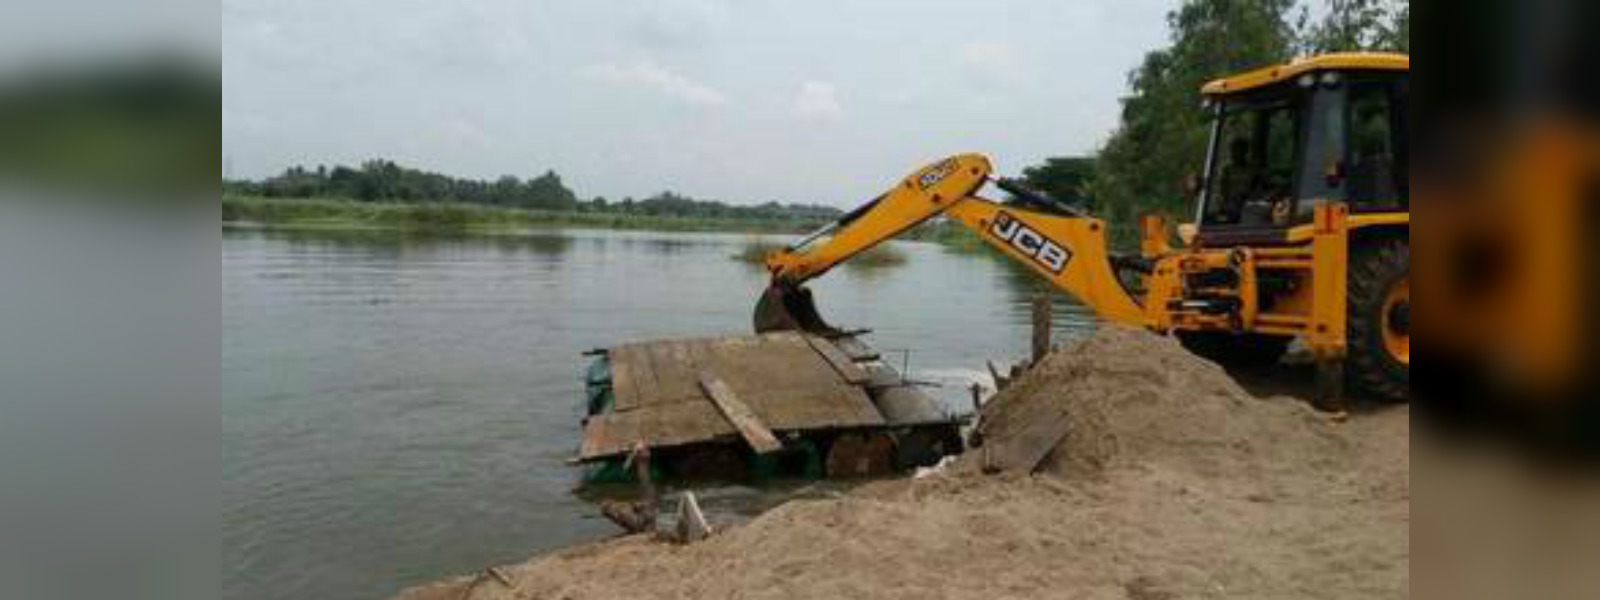 Committee appointed to issue permits for sand and soil mining